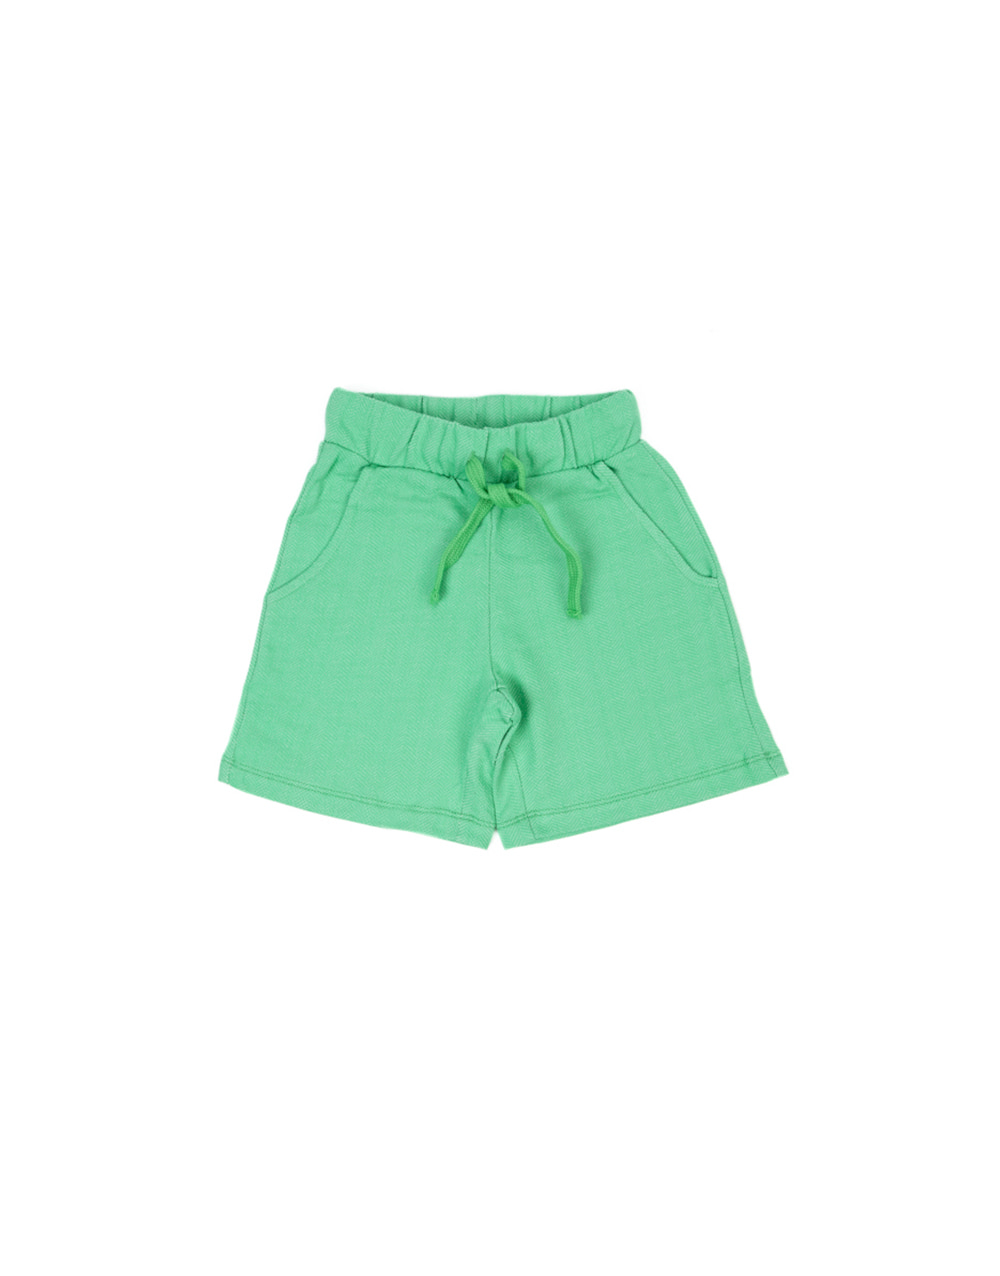 LILY BALOU  Levi Shorts  Poison Green